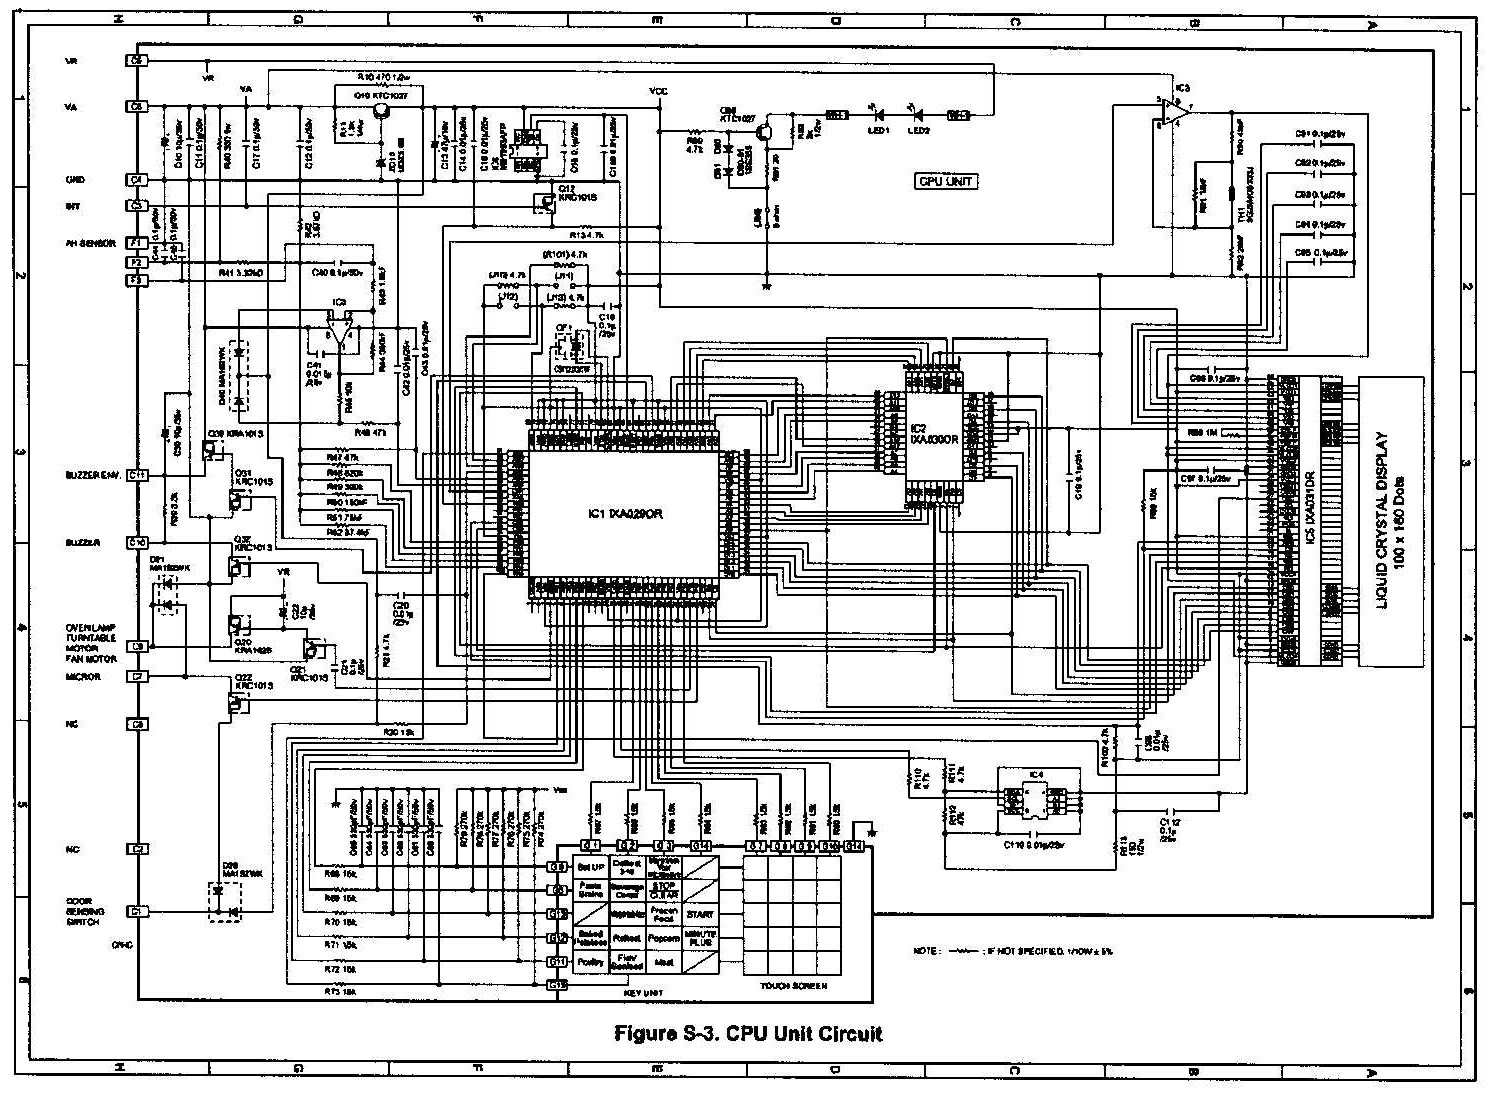 Diagram  Wiring Diagram Of A Microwave Oven Full Version Hd Quality Microwave Oven